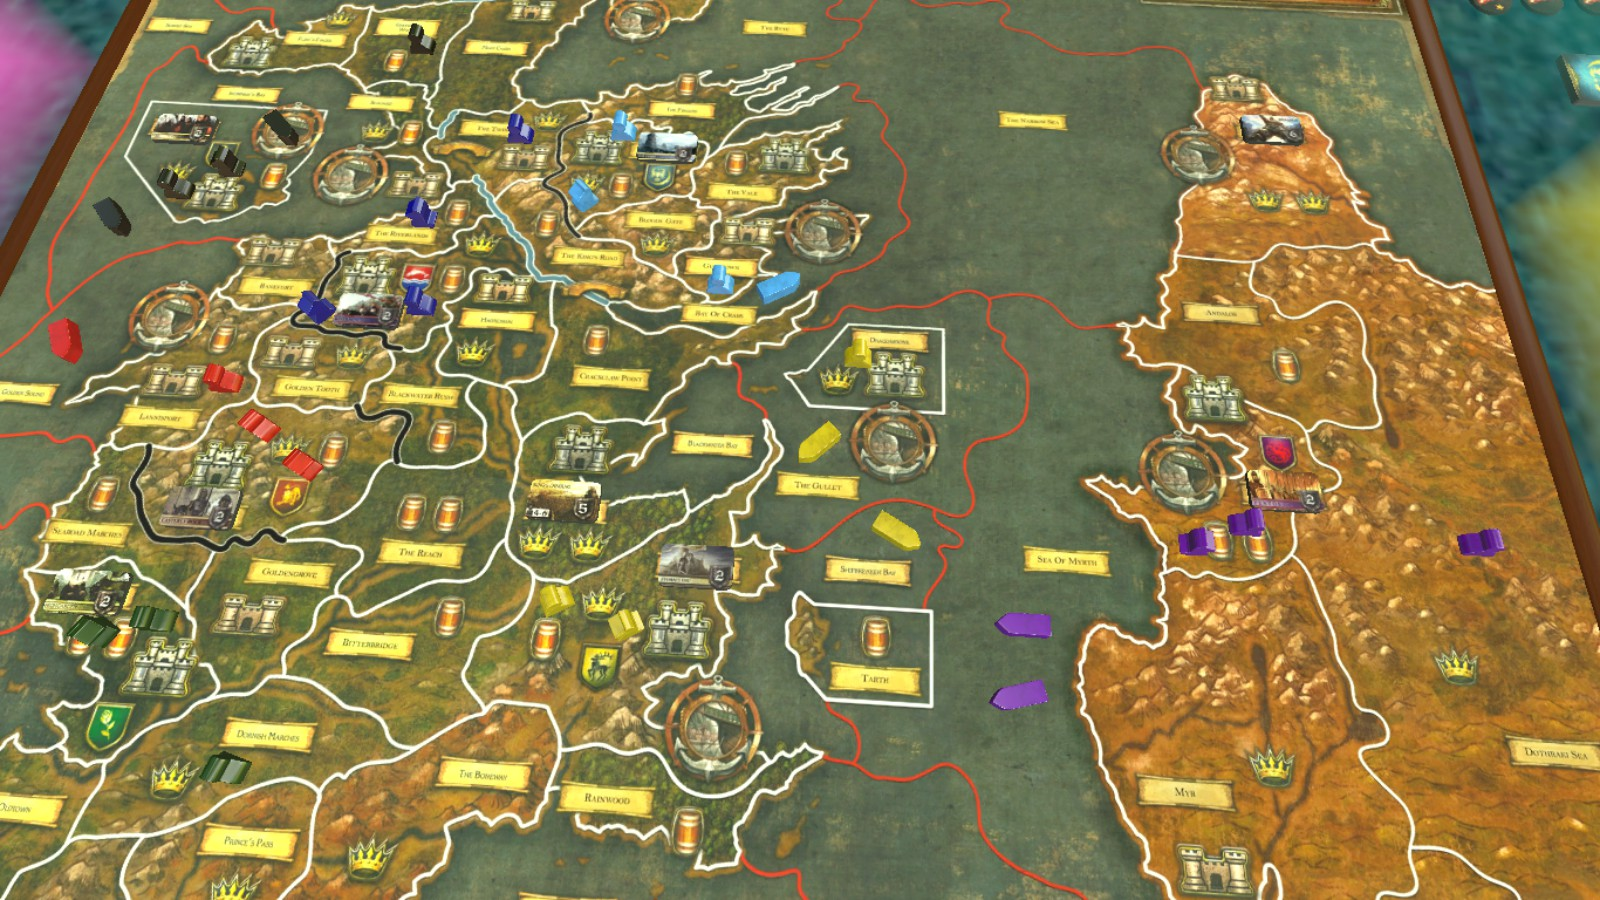 Steam Workshop :: A Game Of Thrones 9 Player Variant on downton abbey map, star trek map, justified map, world map, spooksville map, walking dead map, jersey shore map, narnia map, bloodline map, a storm of swords map, dallas map, clash of kings map, gendry map, jericho map, camelot map, winterfell map, got map, valyria map, qarth map, guild wars 2 map,